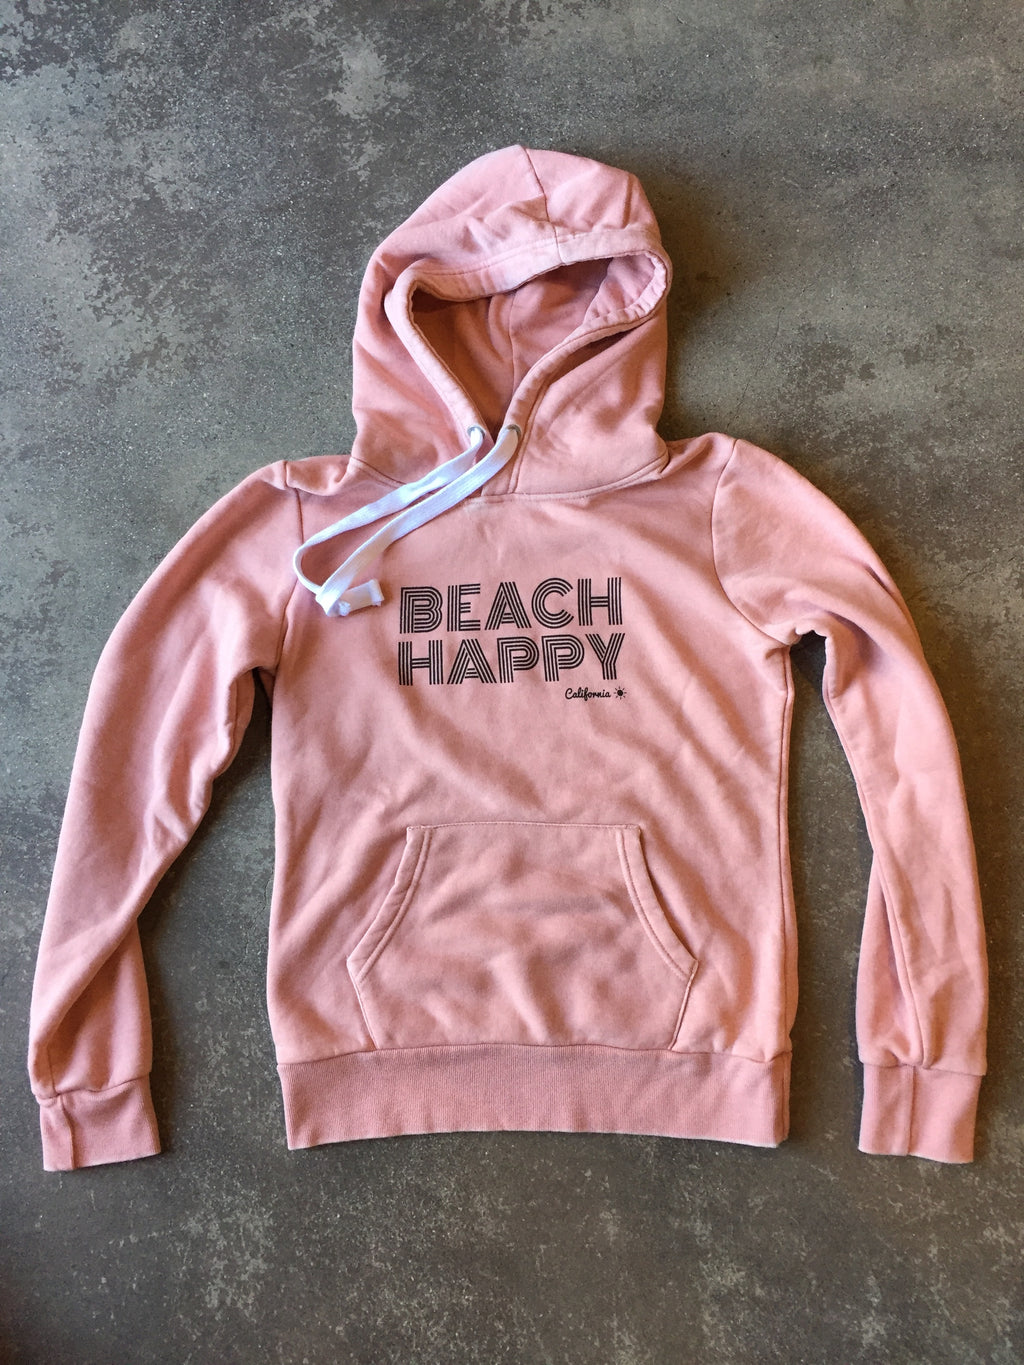 Beach Happy Pullover Sweatshirt PINK FADE